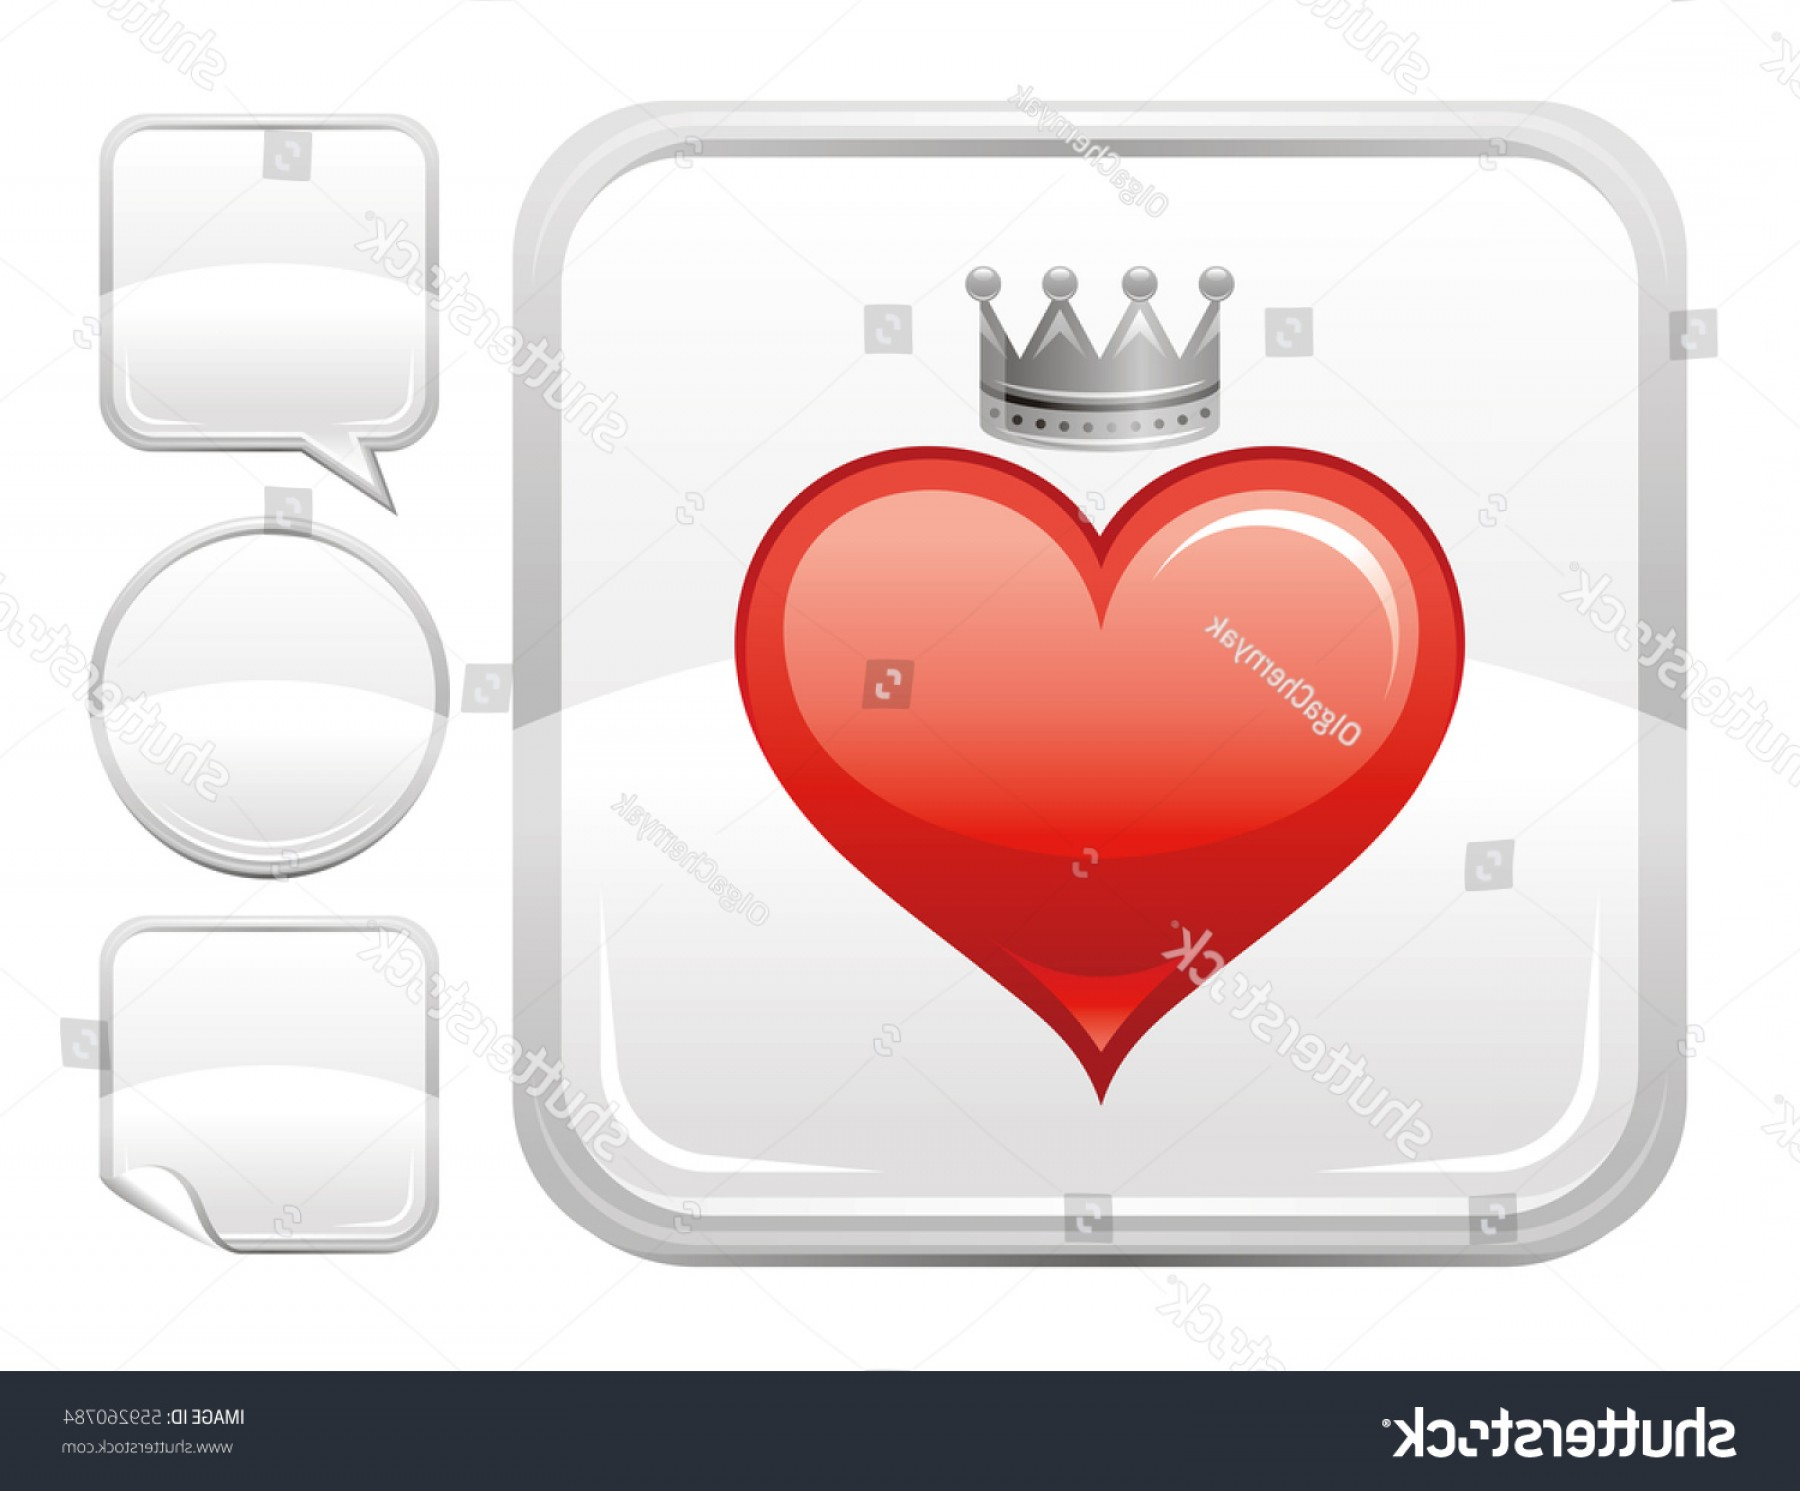 Singer Prince Symbol Vector: Happy Valentines Day Romance Love Heart